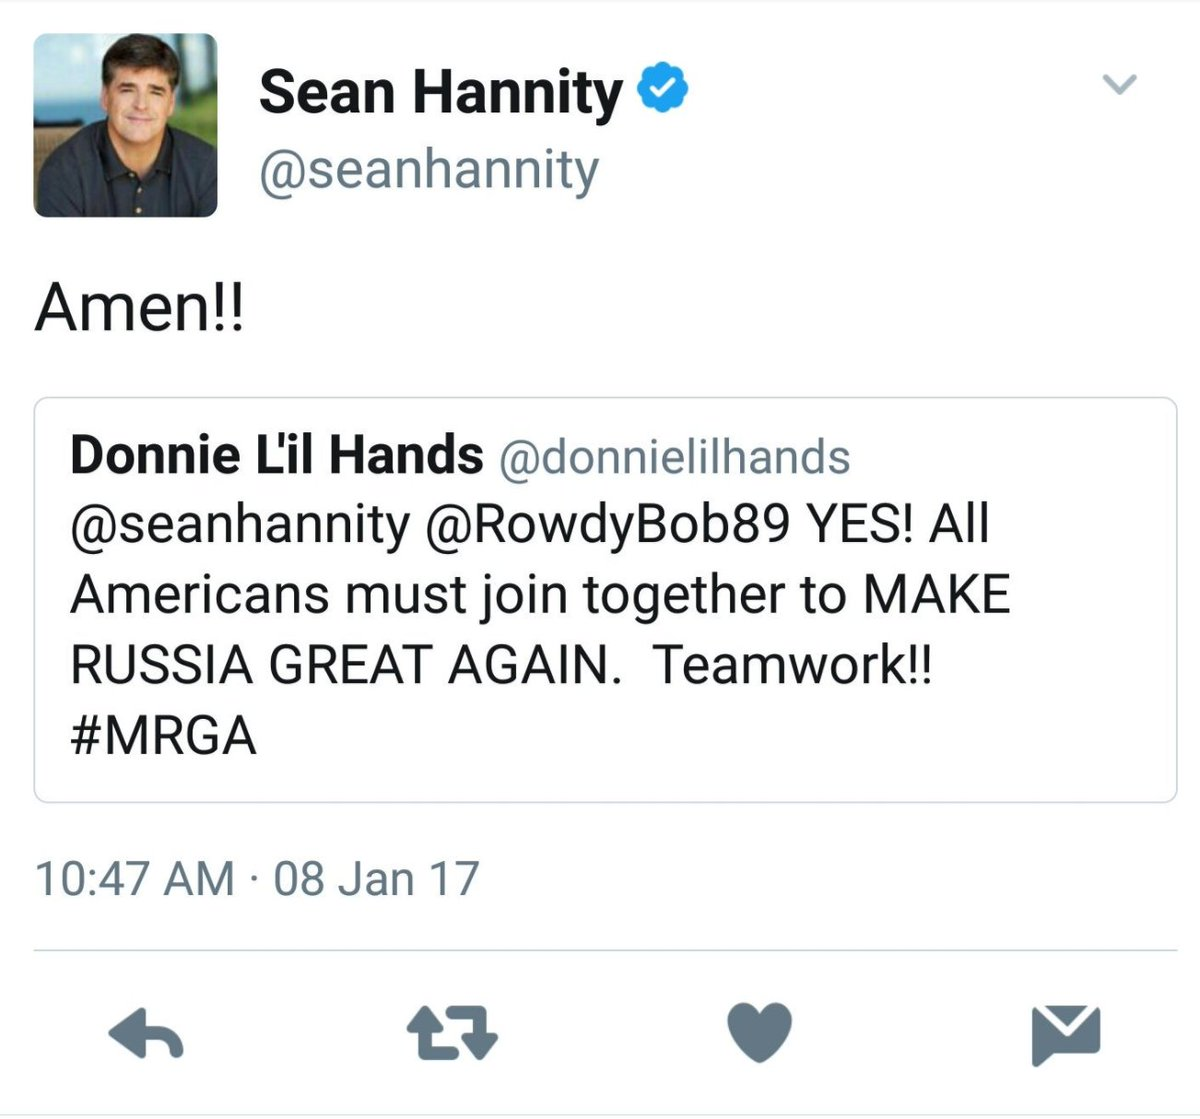 .@ananavarro always screenshot. People delete their assholery on Twitter all the time. Ask @seanhannity. https://t.co/byimqCOyBm